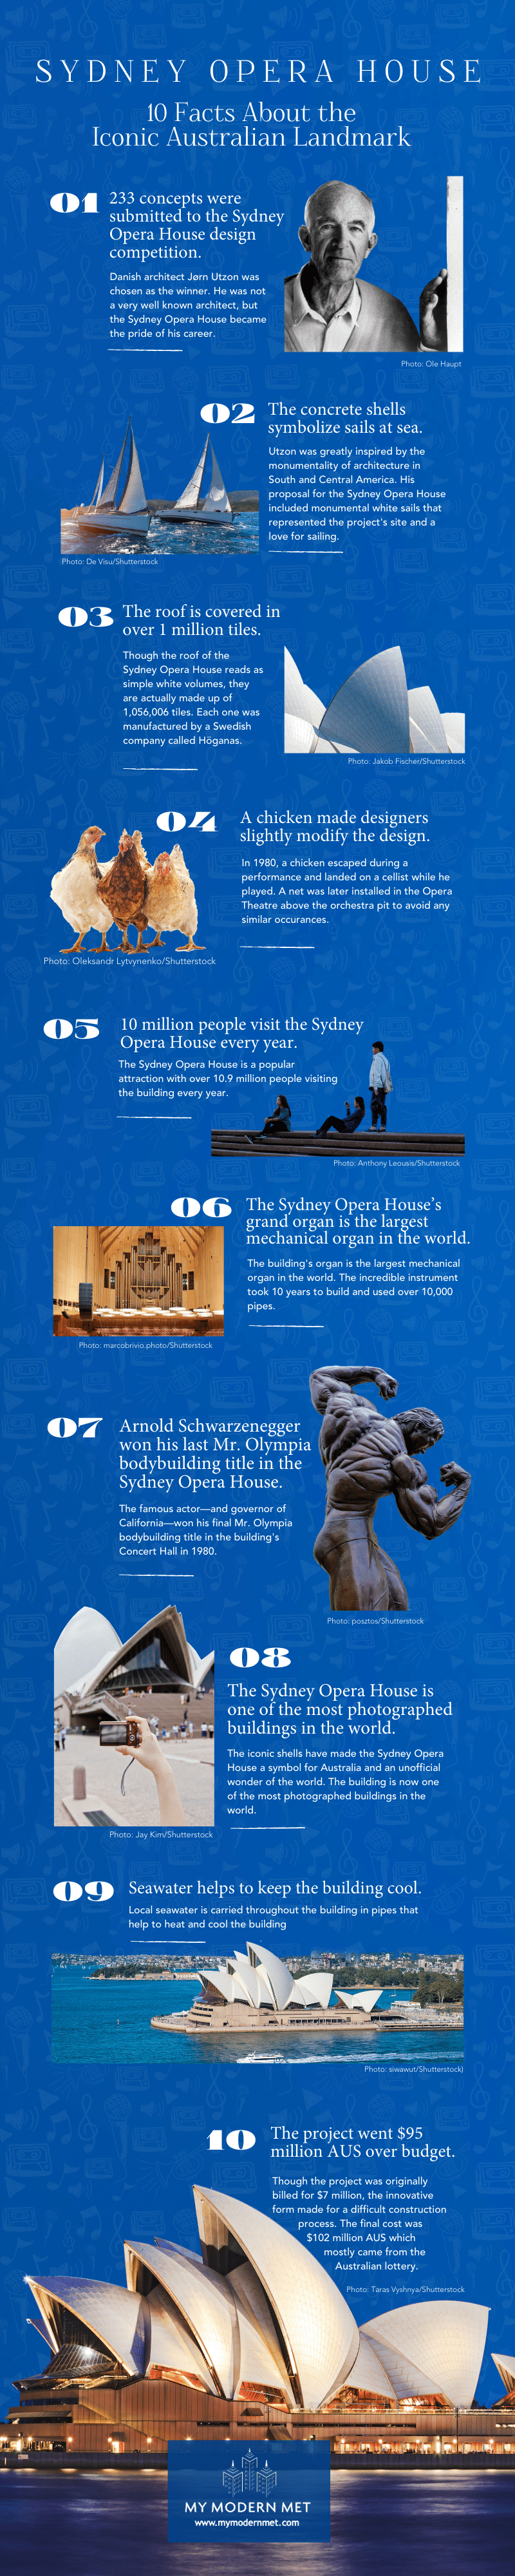 Sydney Opera House Facts Infographic